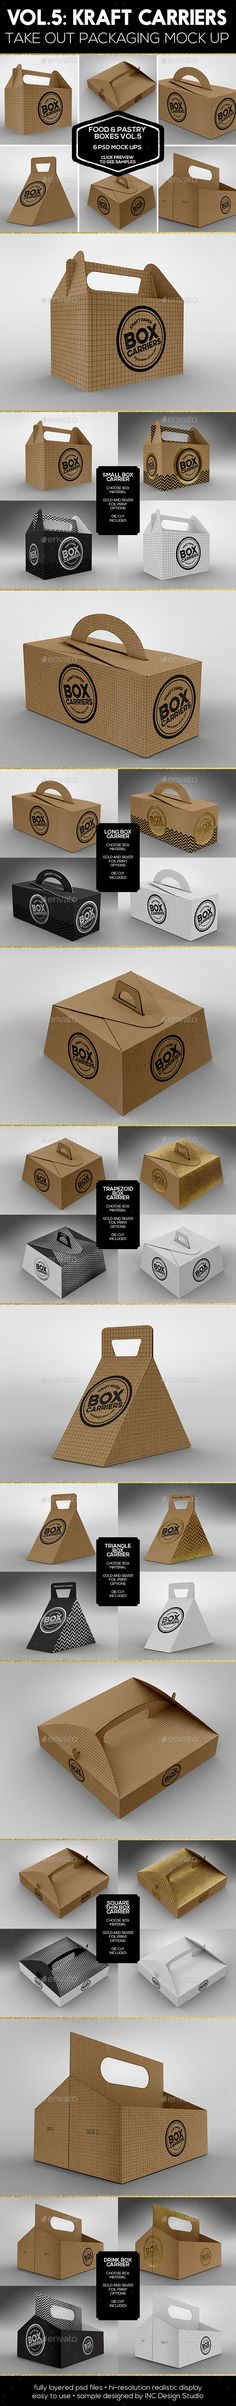 Food Pastry Boxes Vol.5: Kraft Carrier Boxes | Take Out Packaging Mock Ups                                                                                                                                                                                 More